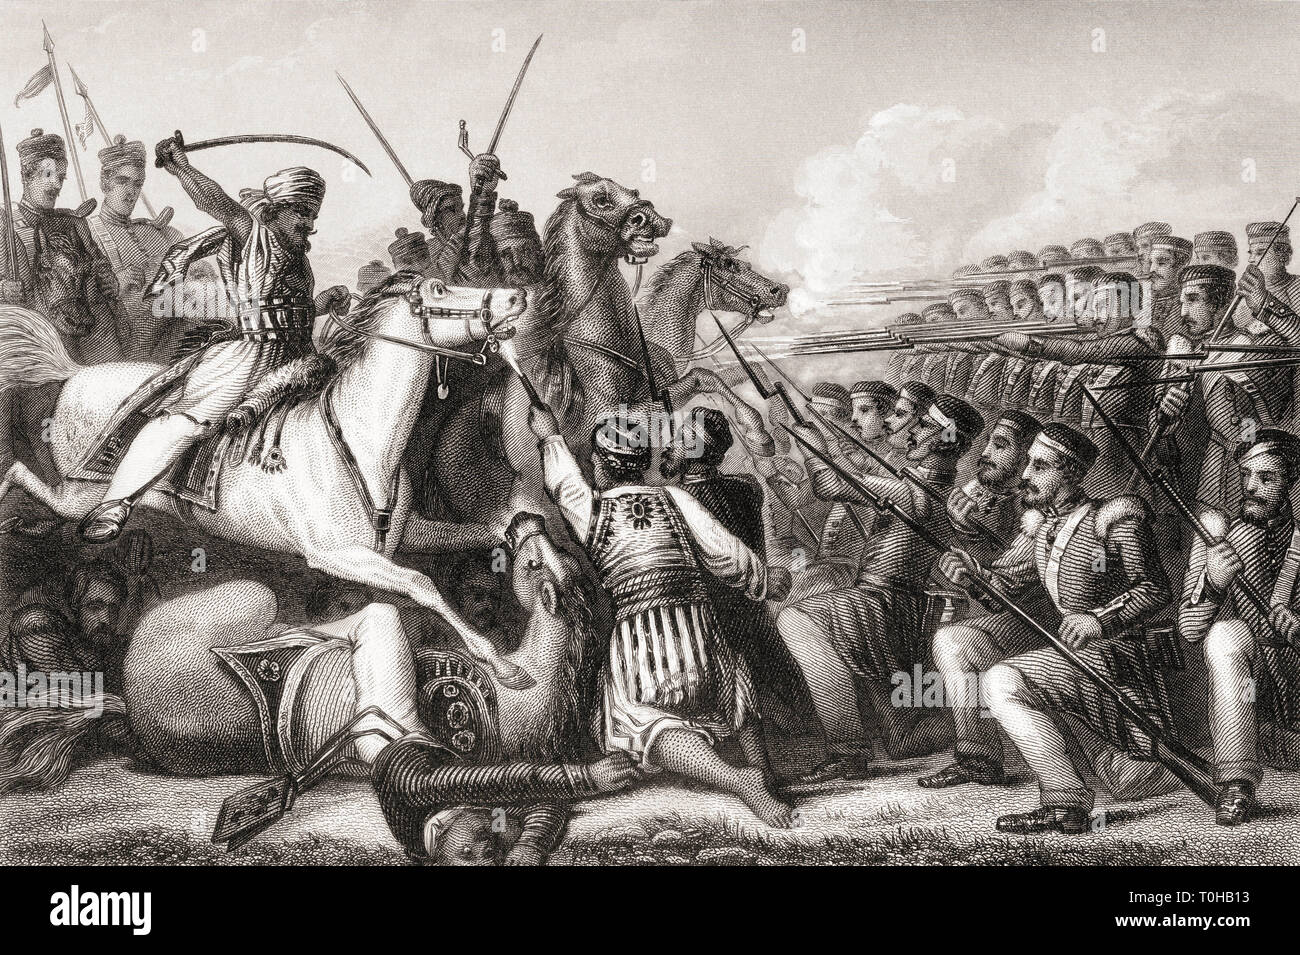 Mutineer cavalry attacking an infantry square, Battle of Cawnpore, India, Asia, 1857 Stock Photo